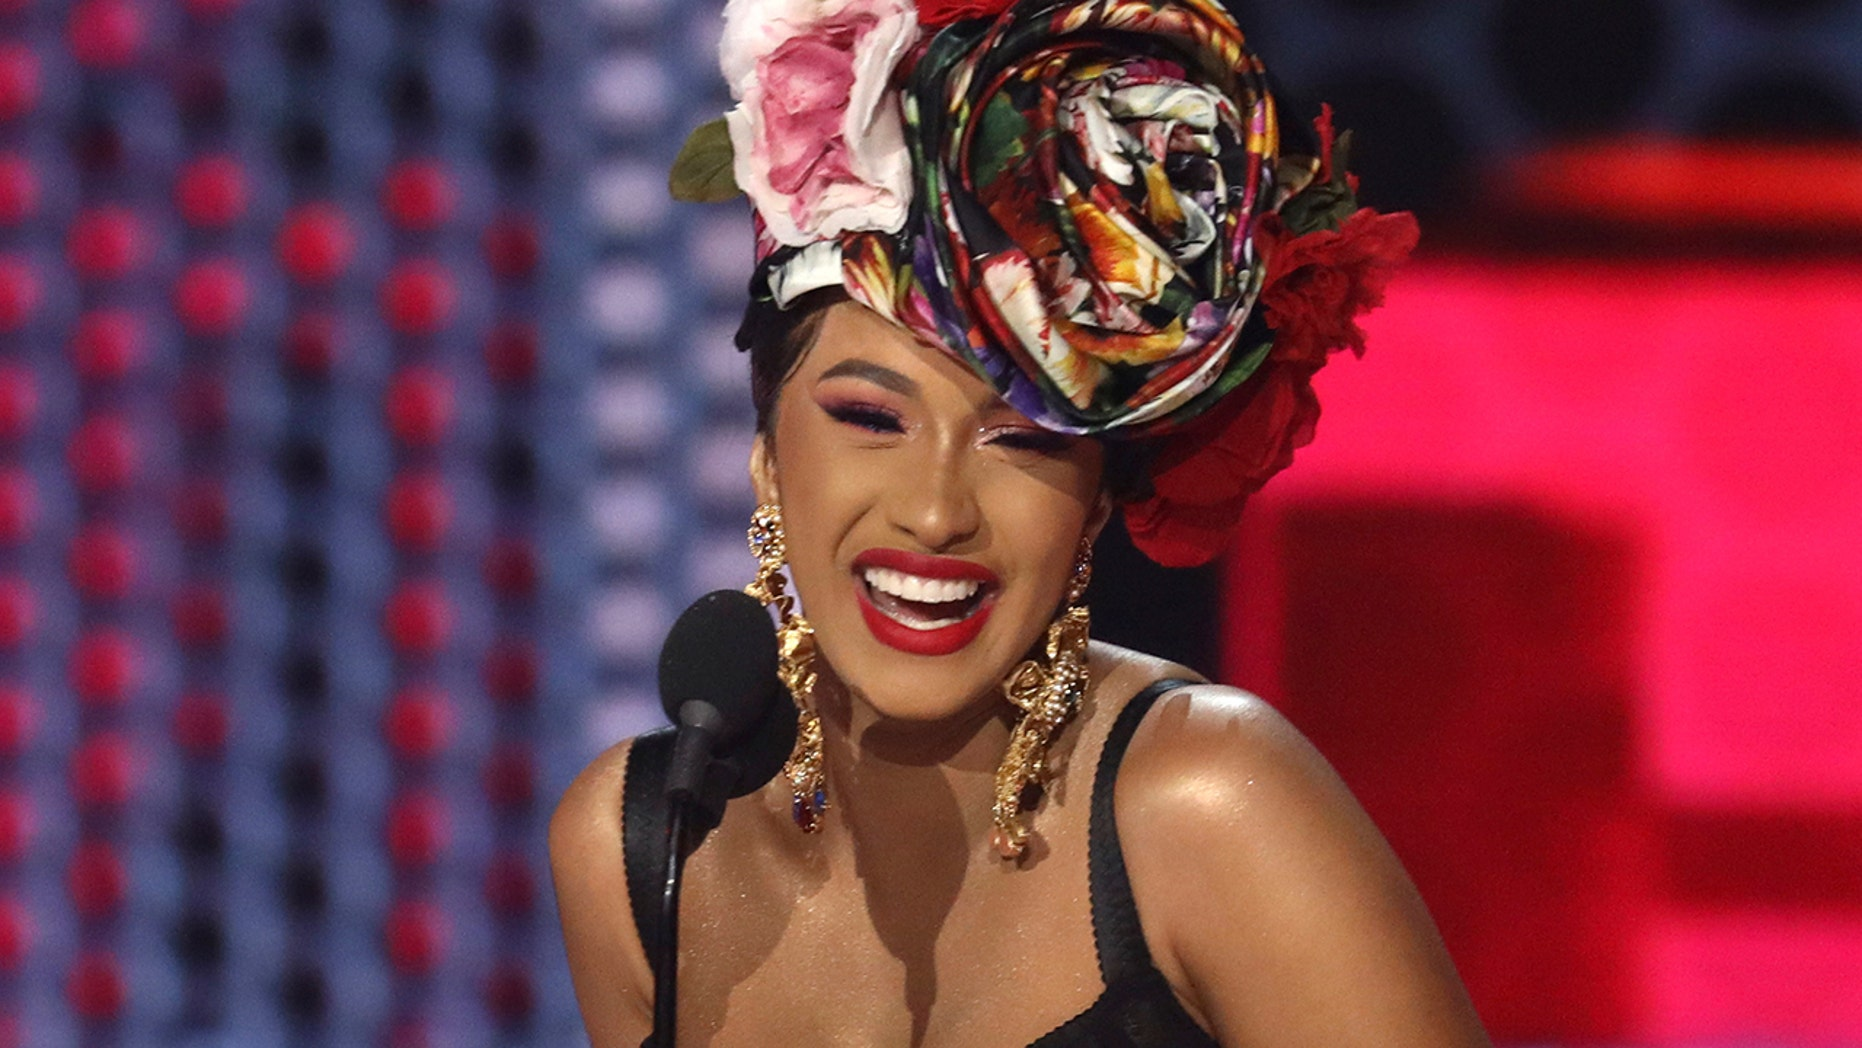 Cardi B says baby Kulture broke her vagina during childbirth